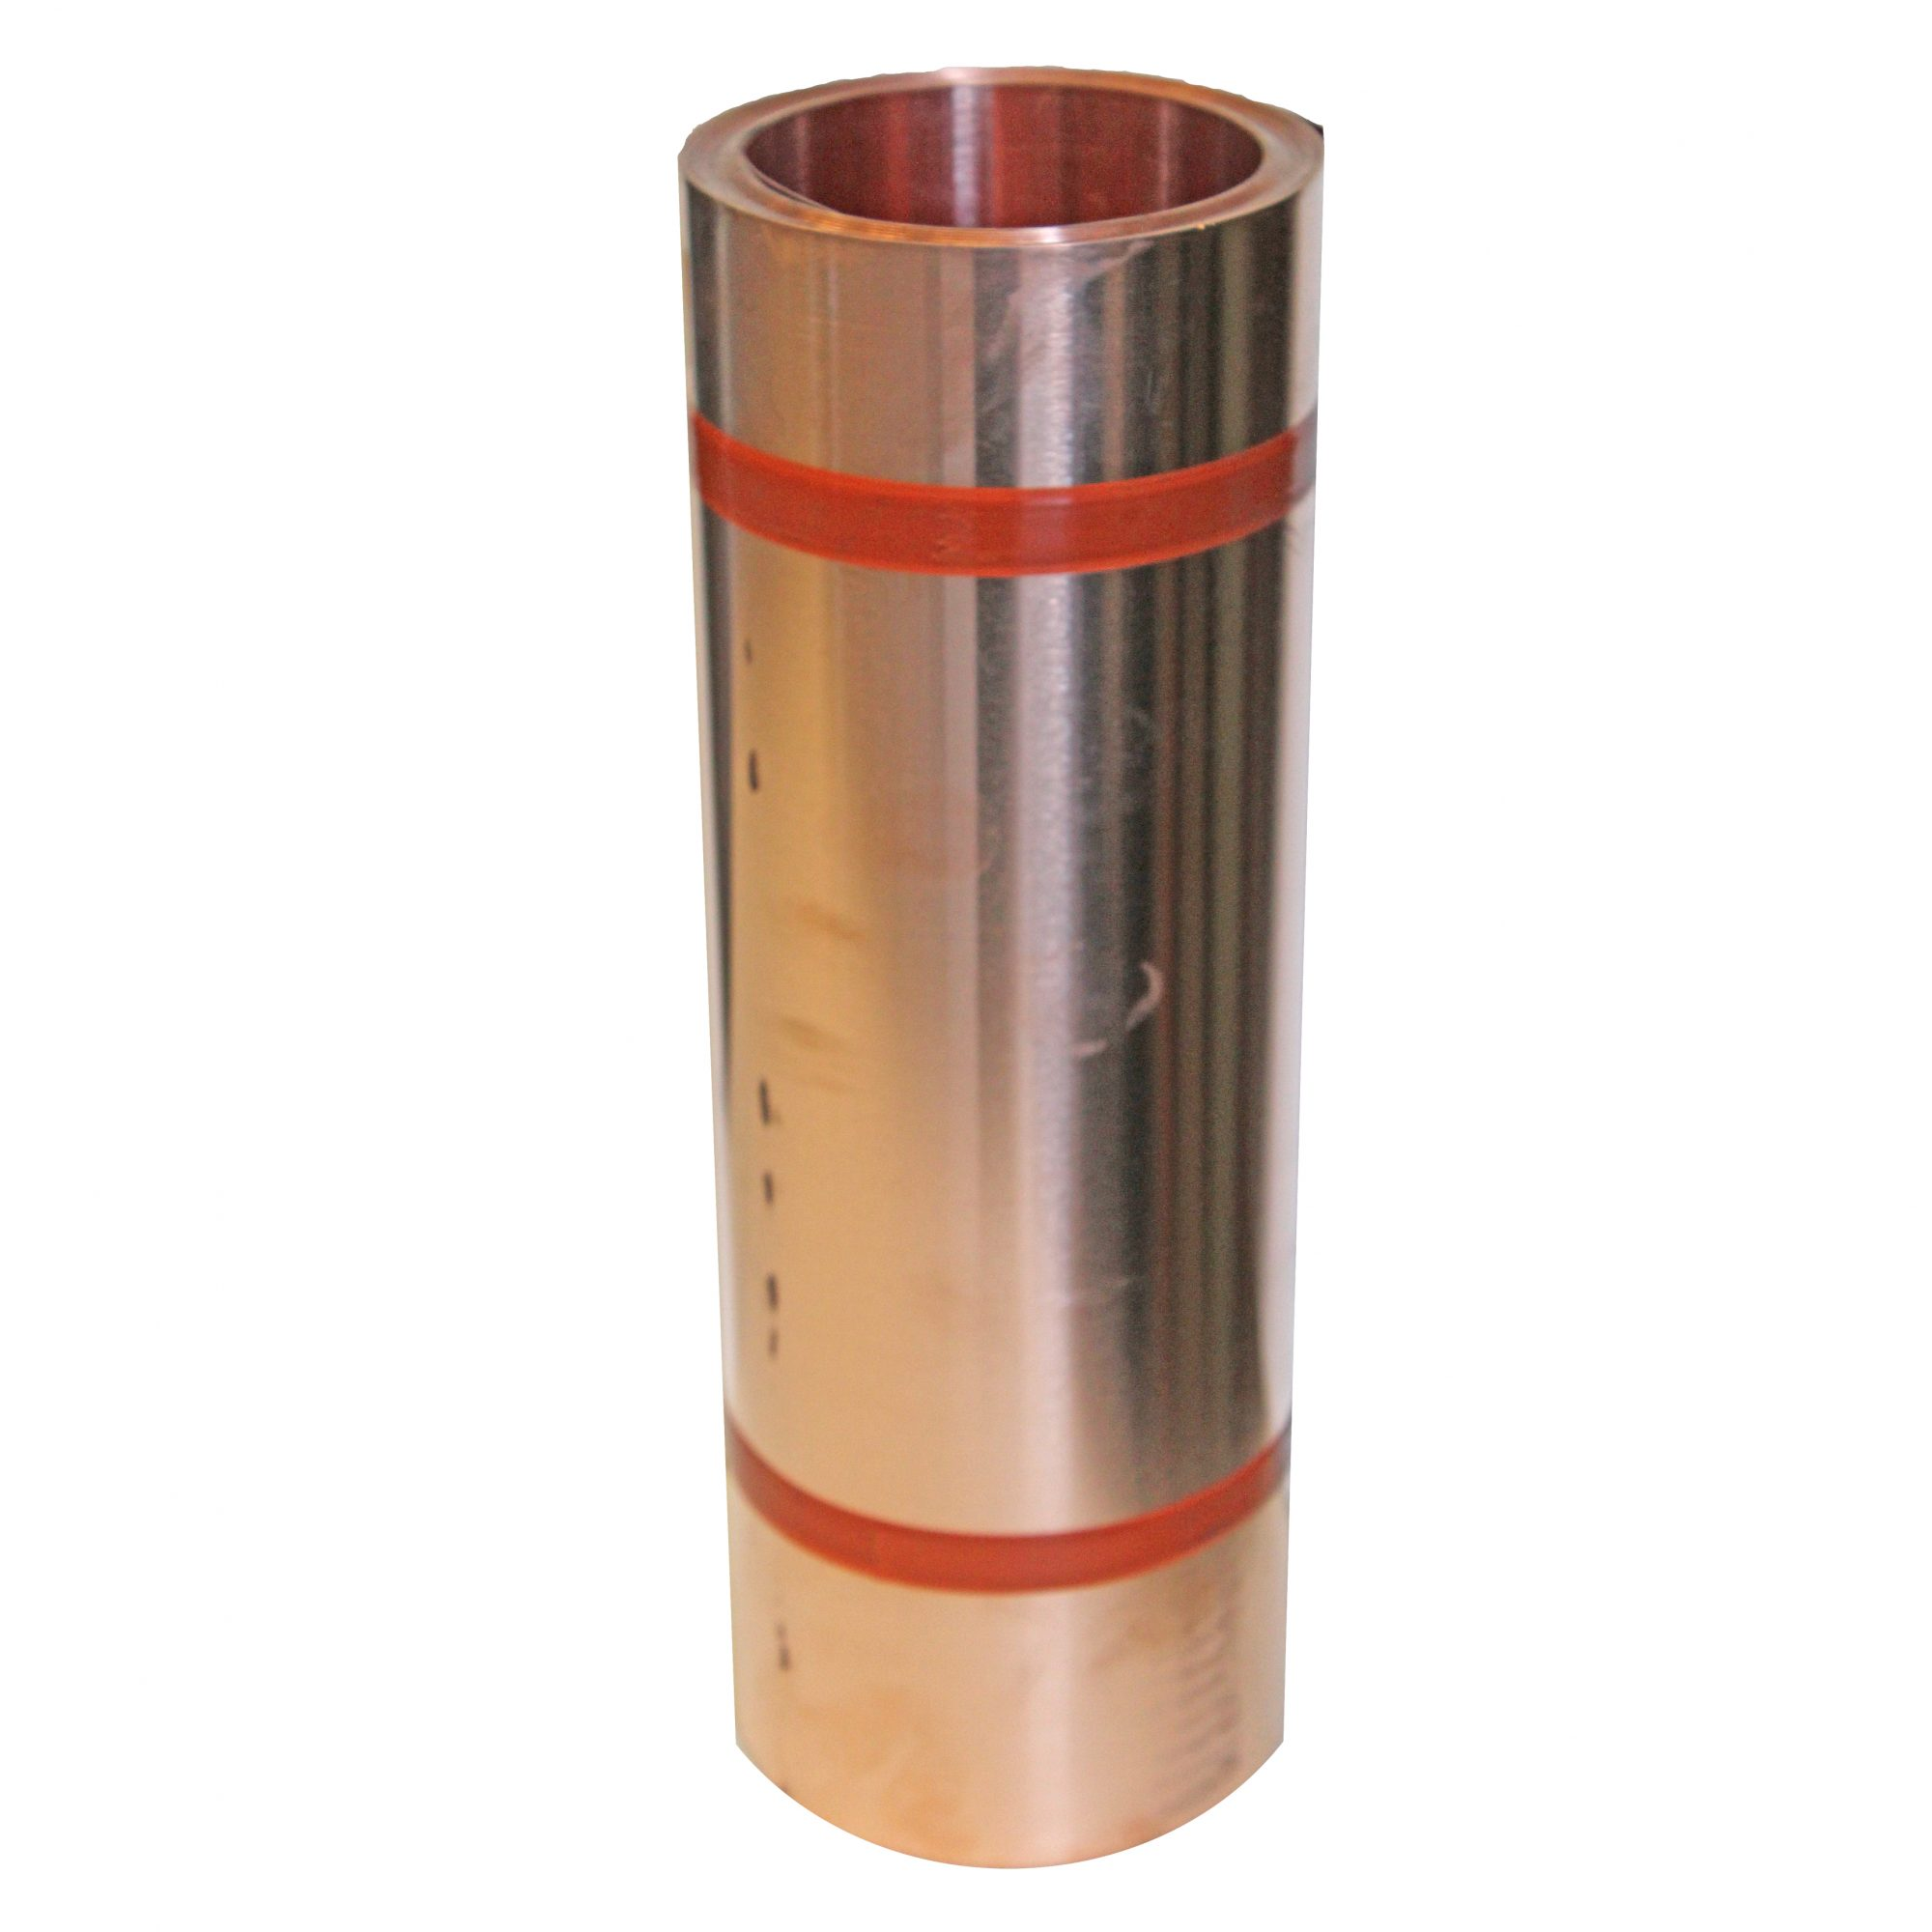 Copper Flashing (Approx 25′ – will vary)